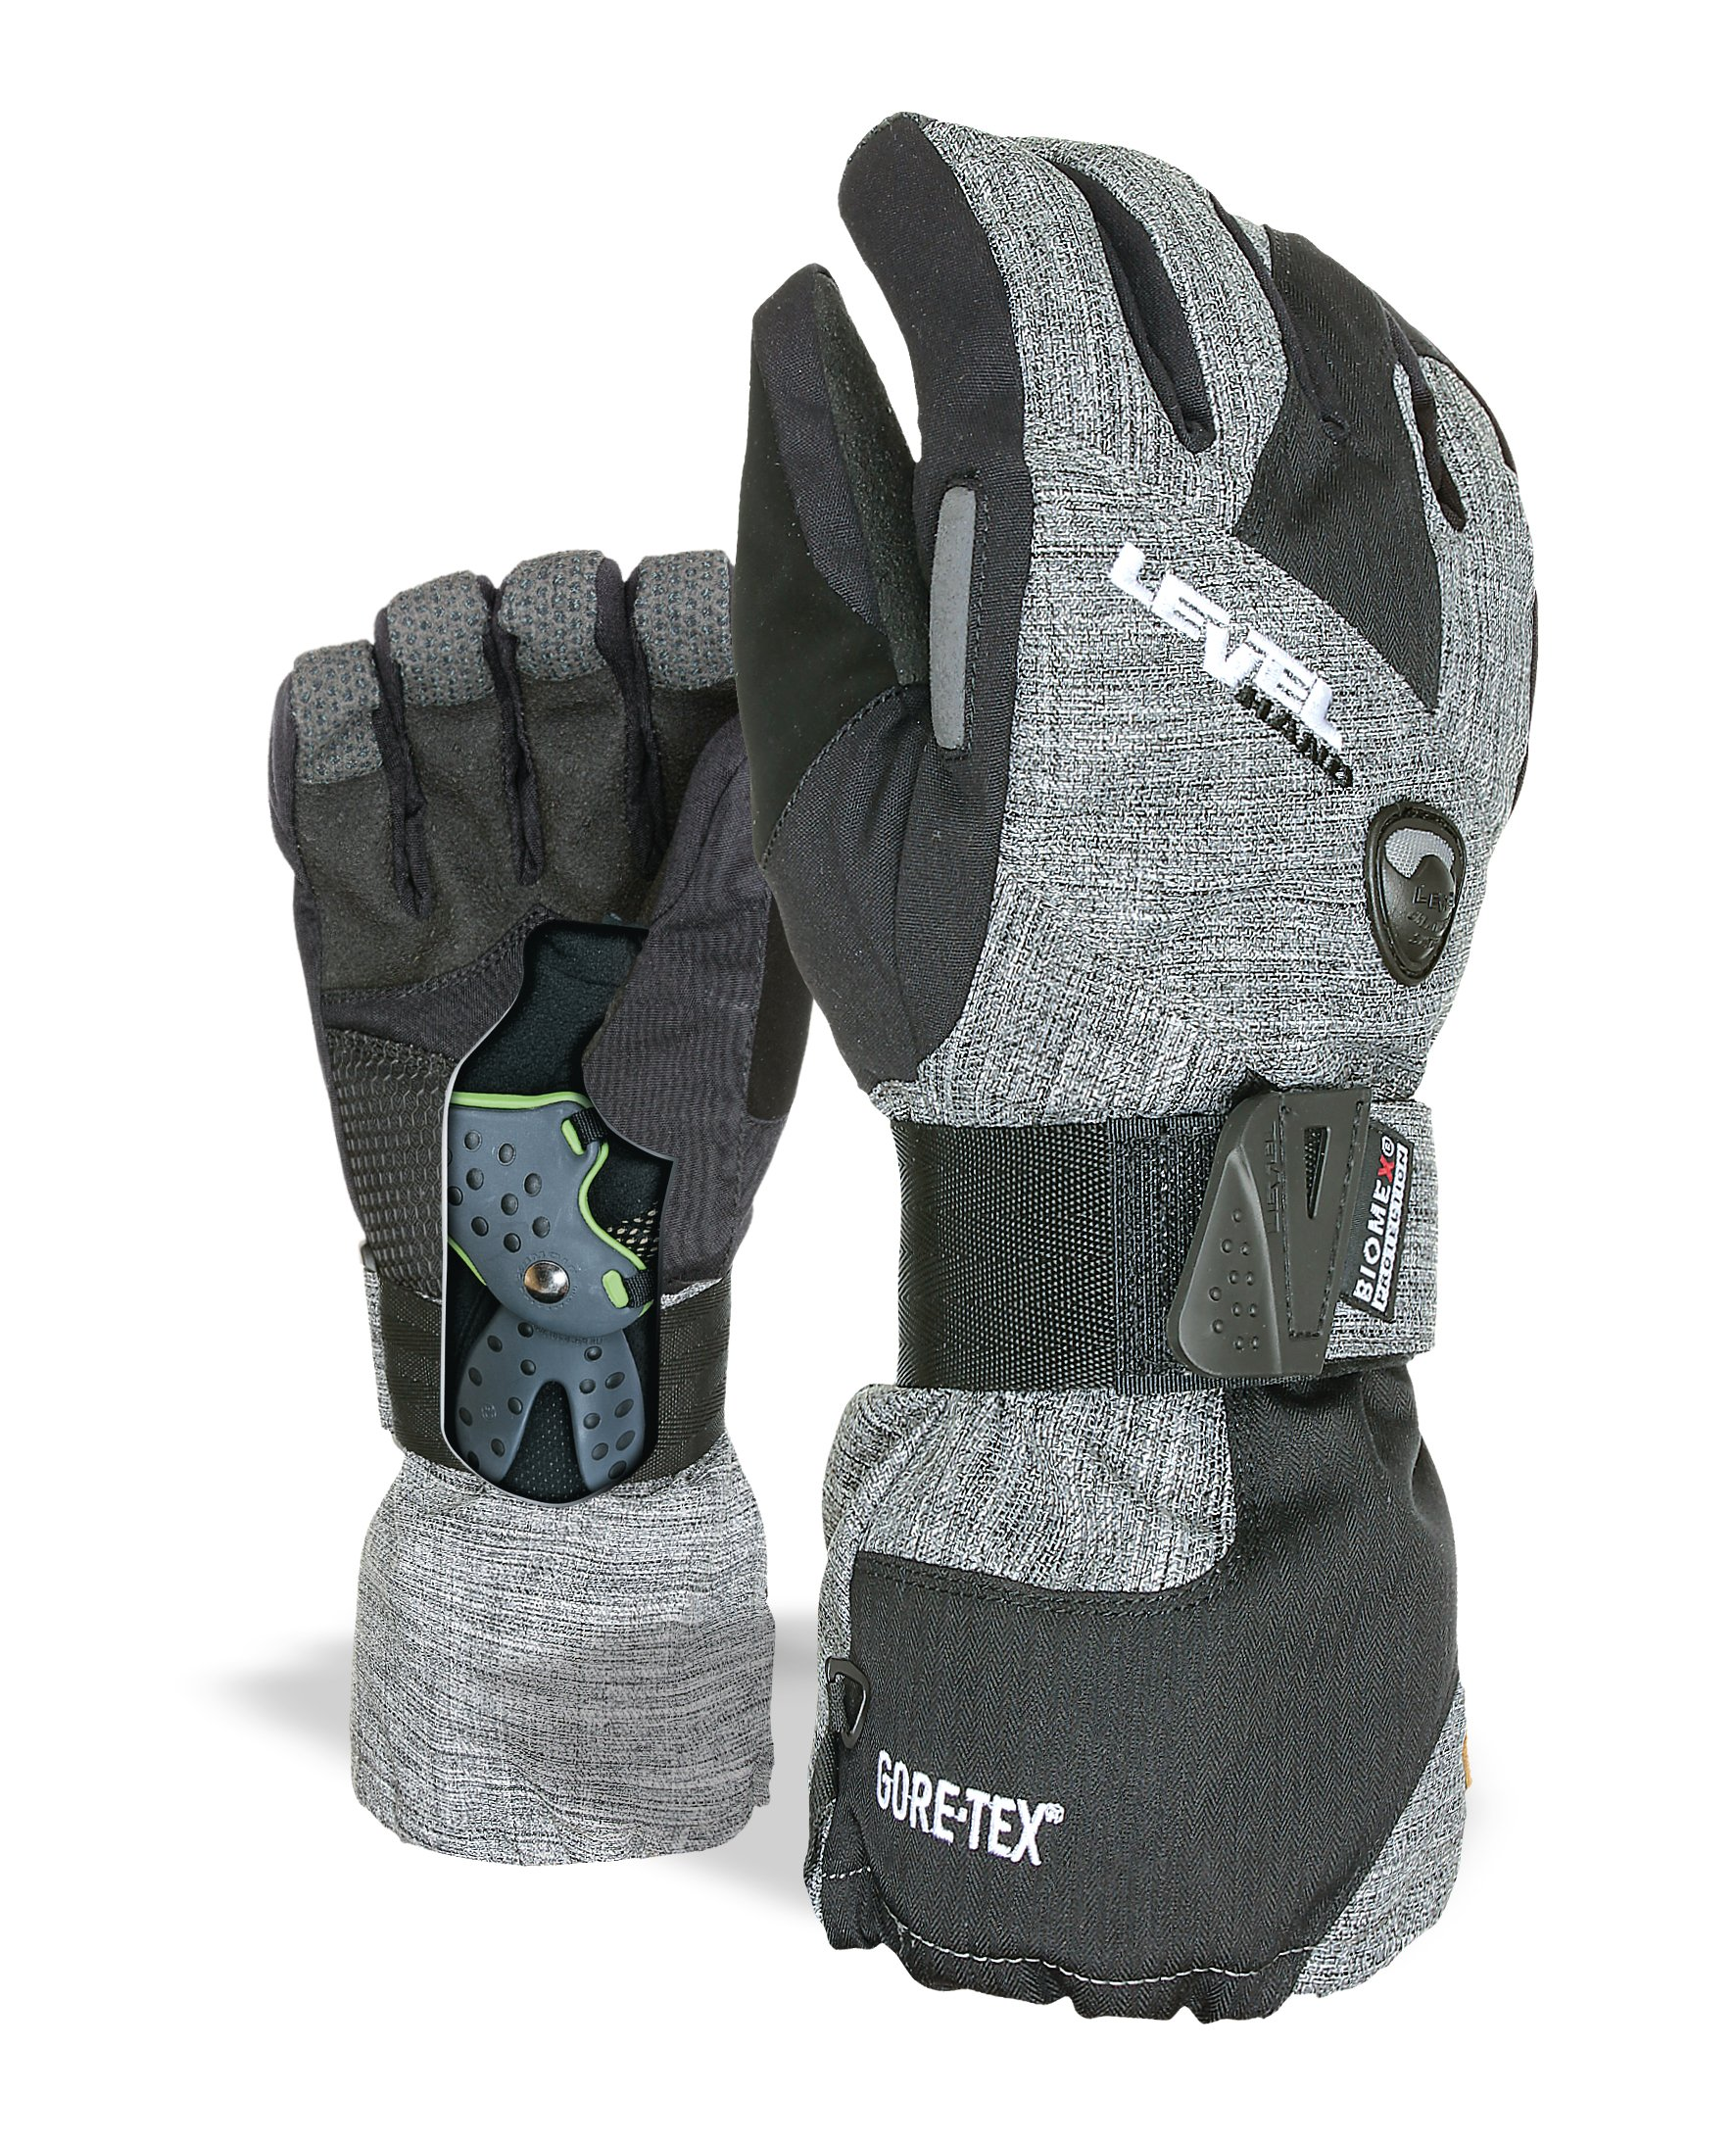 Level Half Pipe GTX Snowboard Protective Gloves with GoreTex Shell, BioMex Integrated Wrist Guards, ThermoPlus Liner (Anthracite, Large (9.0 in))